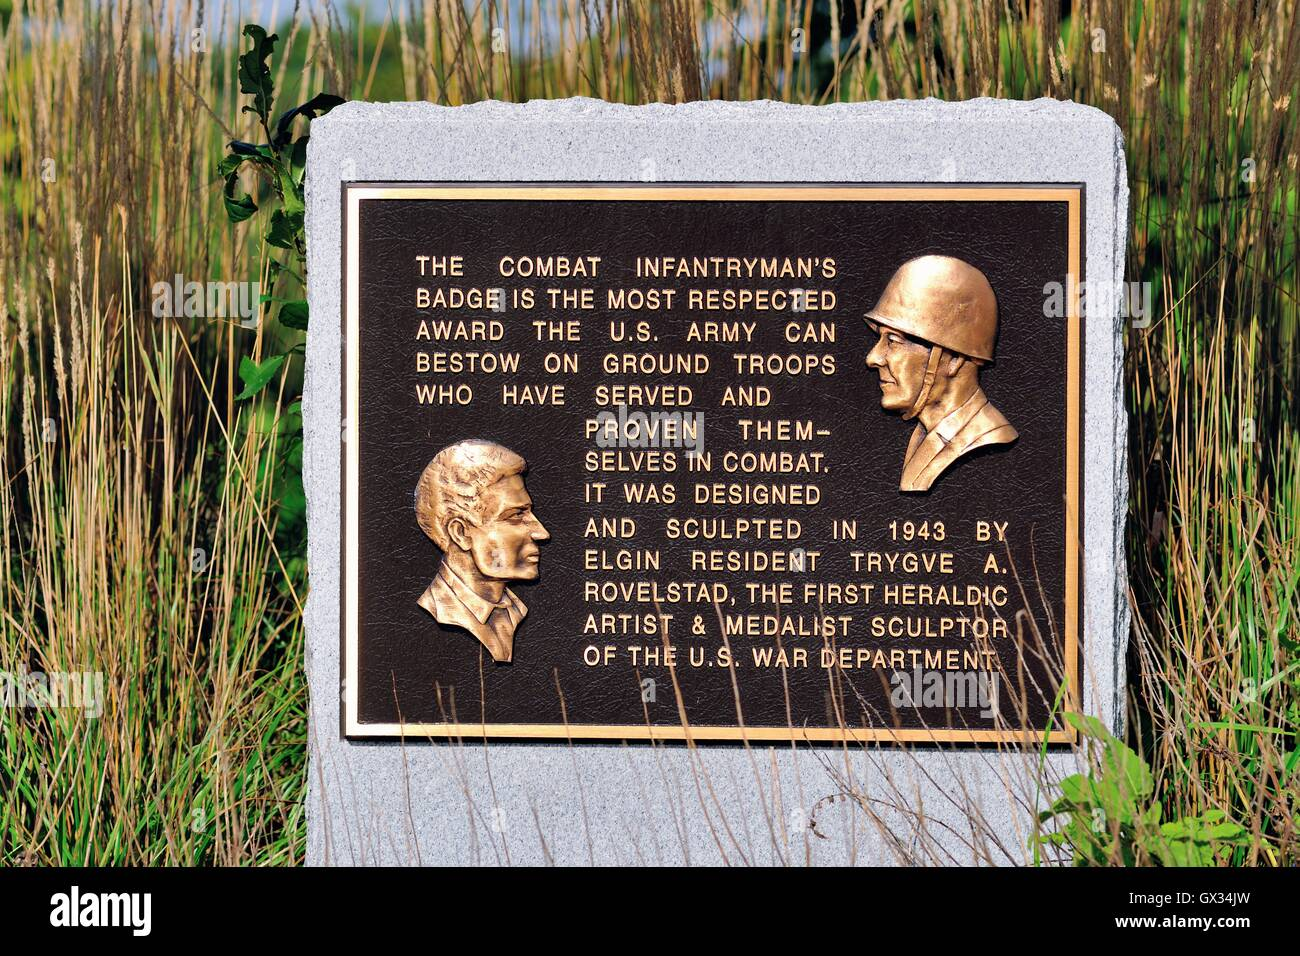 A plaque commemorating the combat infantryman's badge and its design at a veterans memorial in Elgin, Illinois, - Stock Image